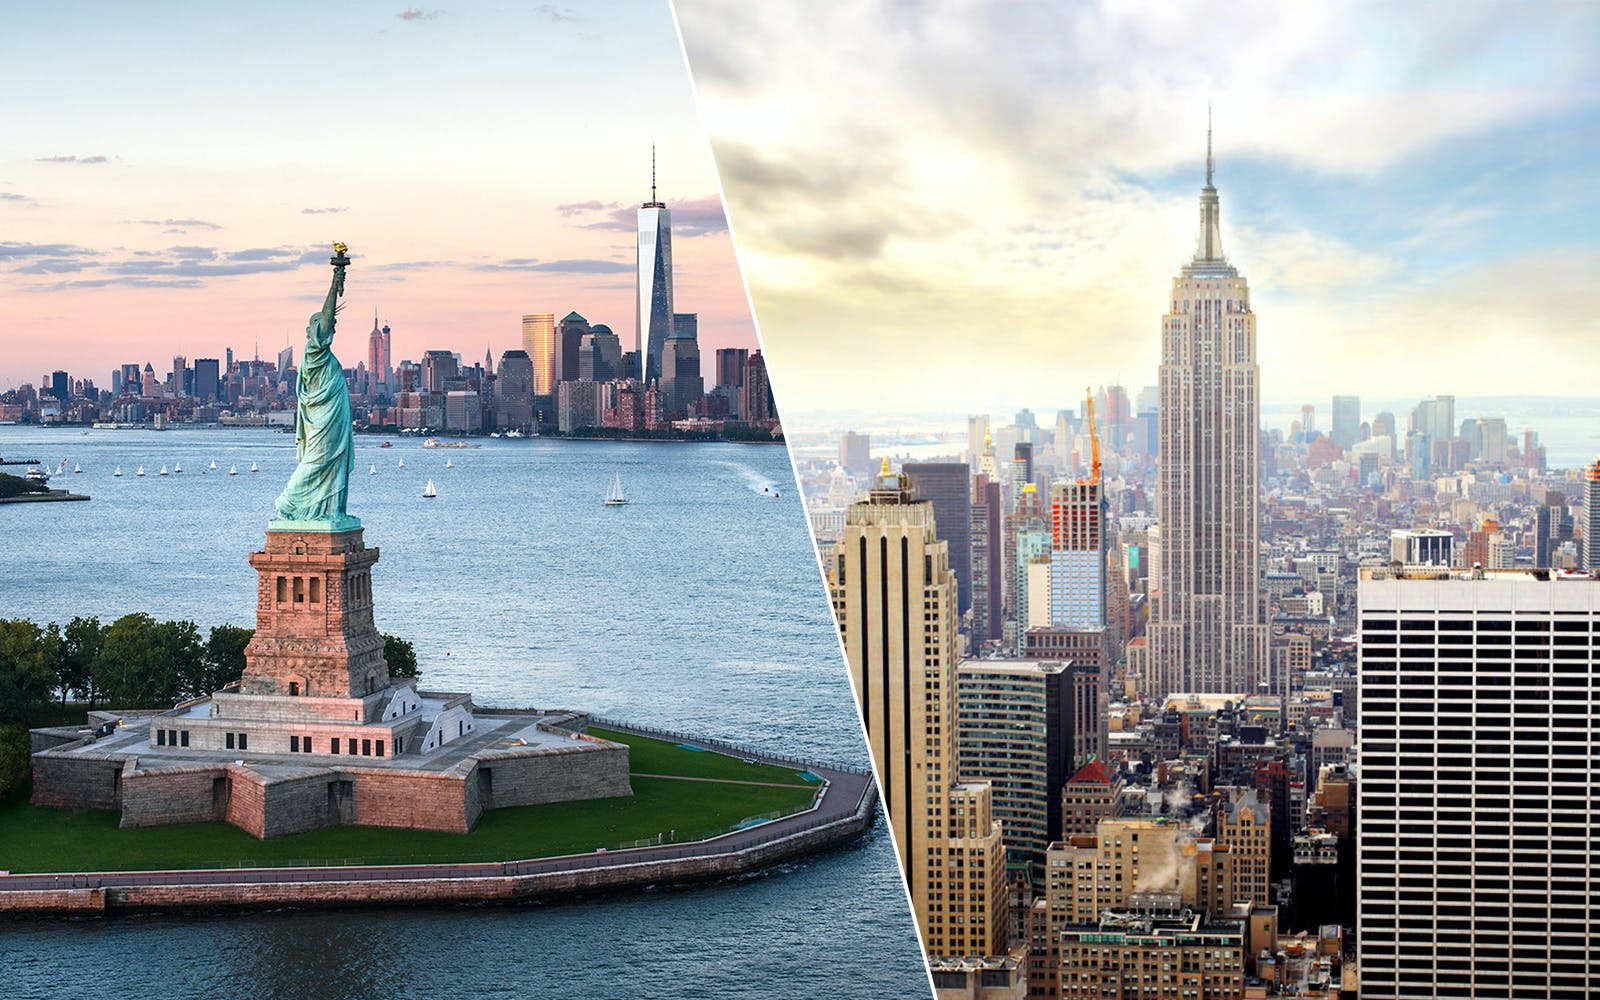 Skip the Line Empire State Building Tickets + Statue of Liberty Cruise